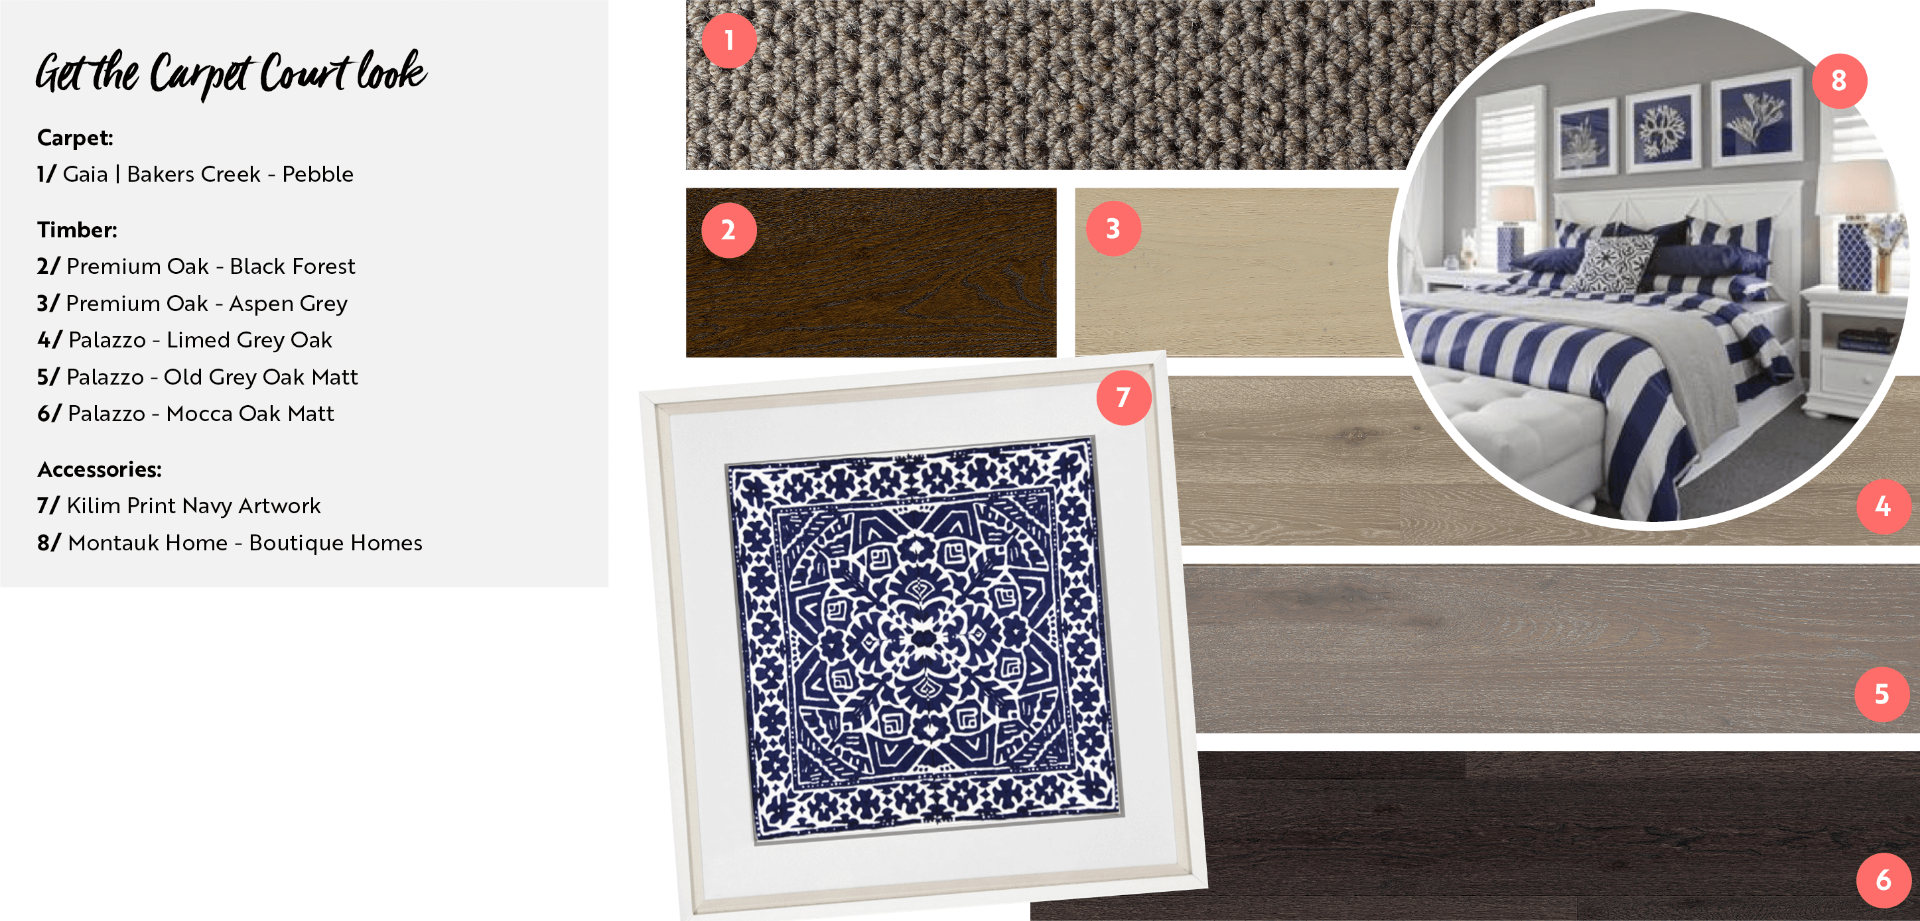 Hamptons Style Carpet Timber Now Available At Carpet Court